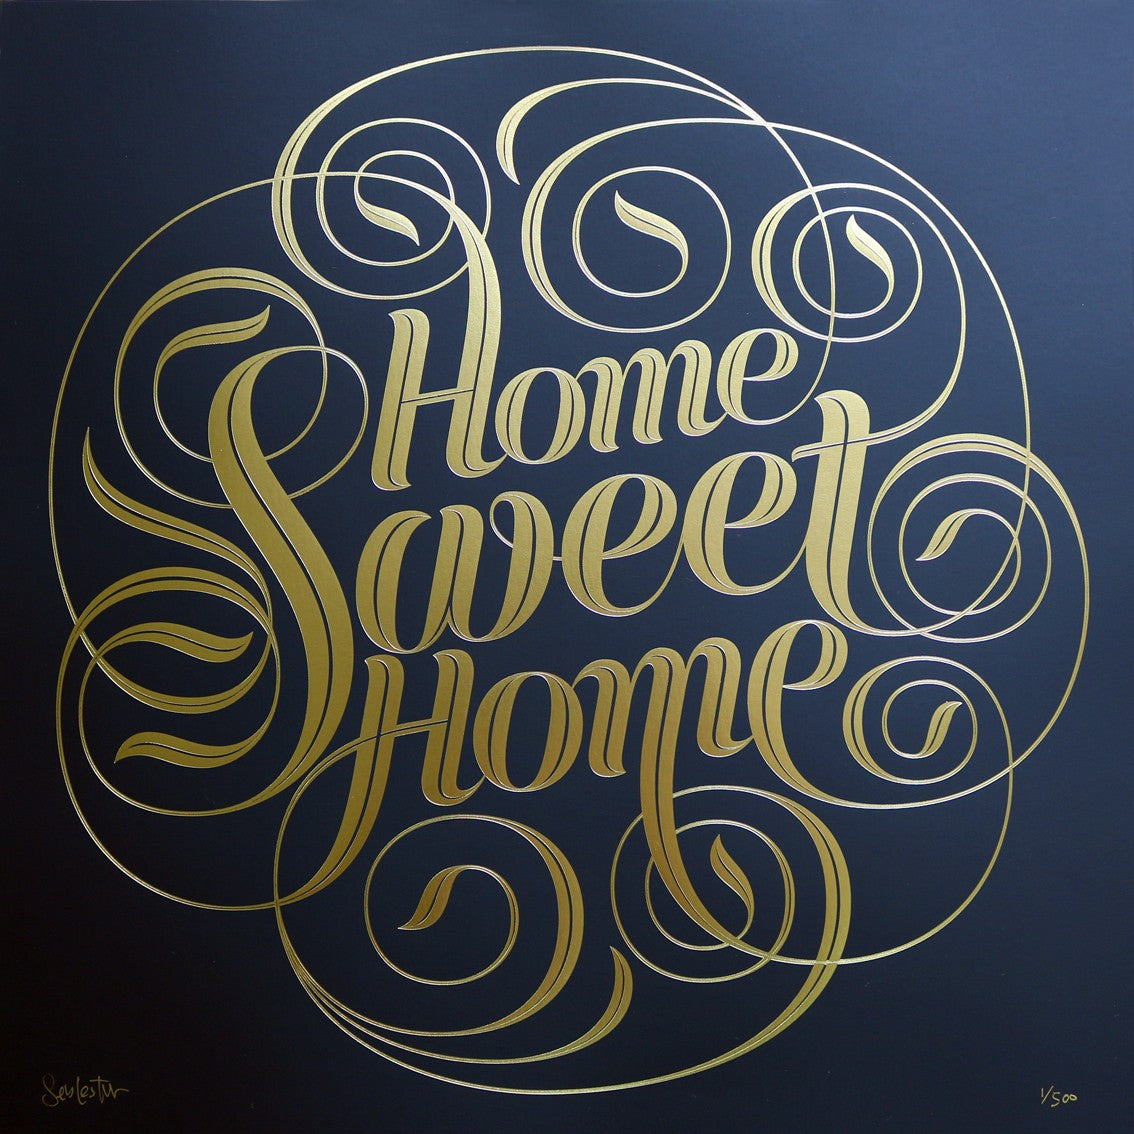 Home Sweet Home Foil Block Print by Seb Lester Soma Gallery